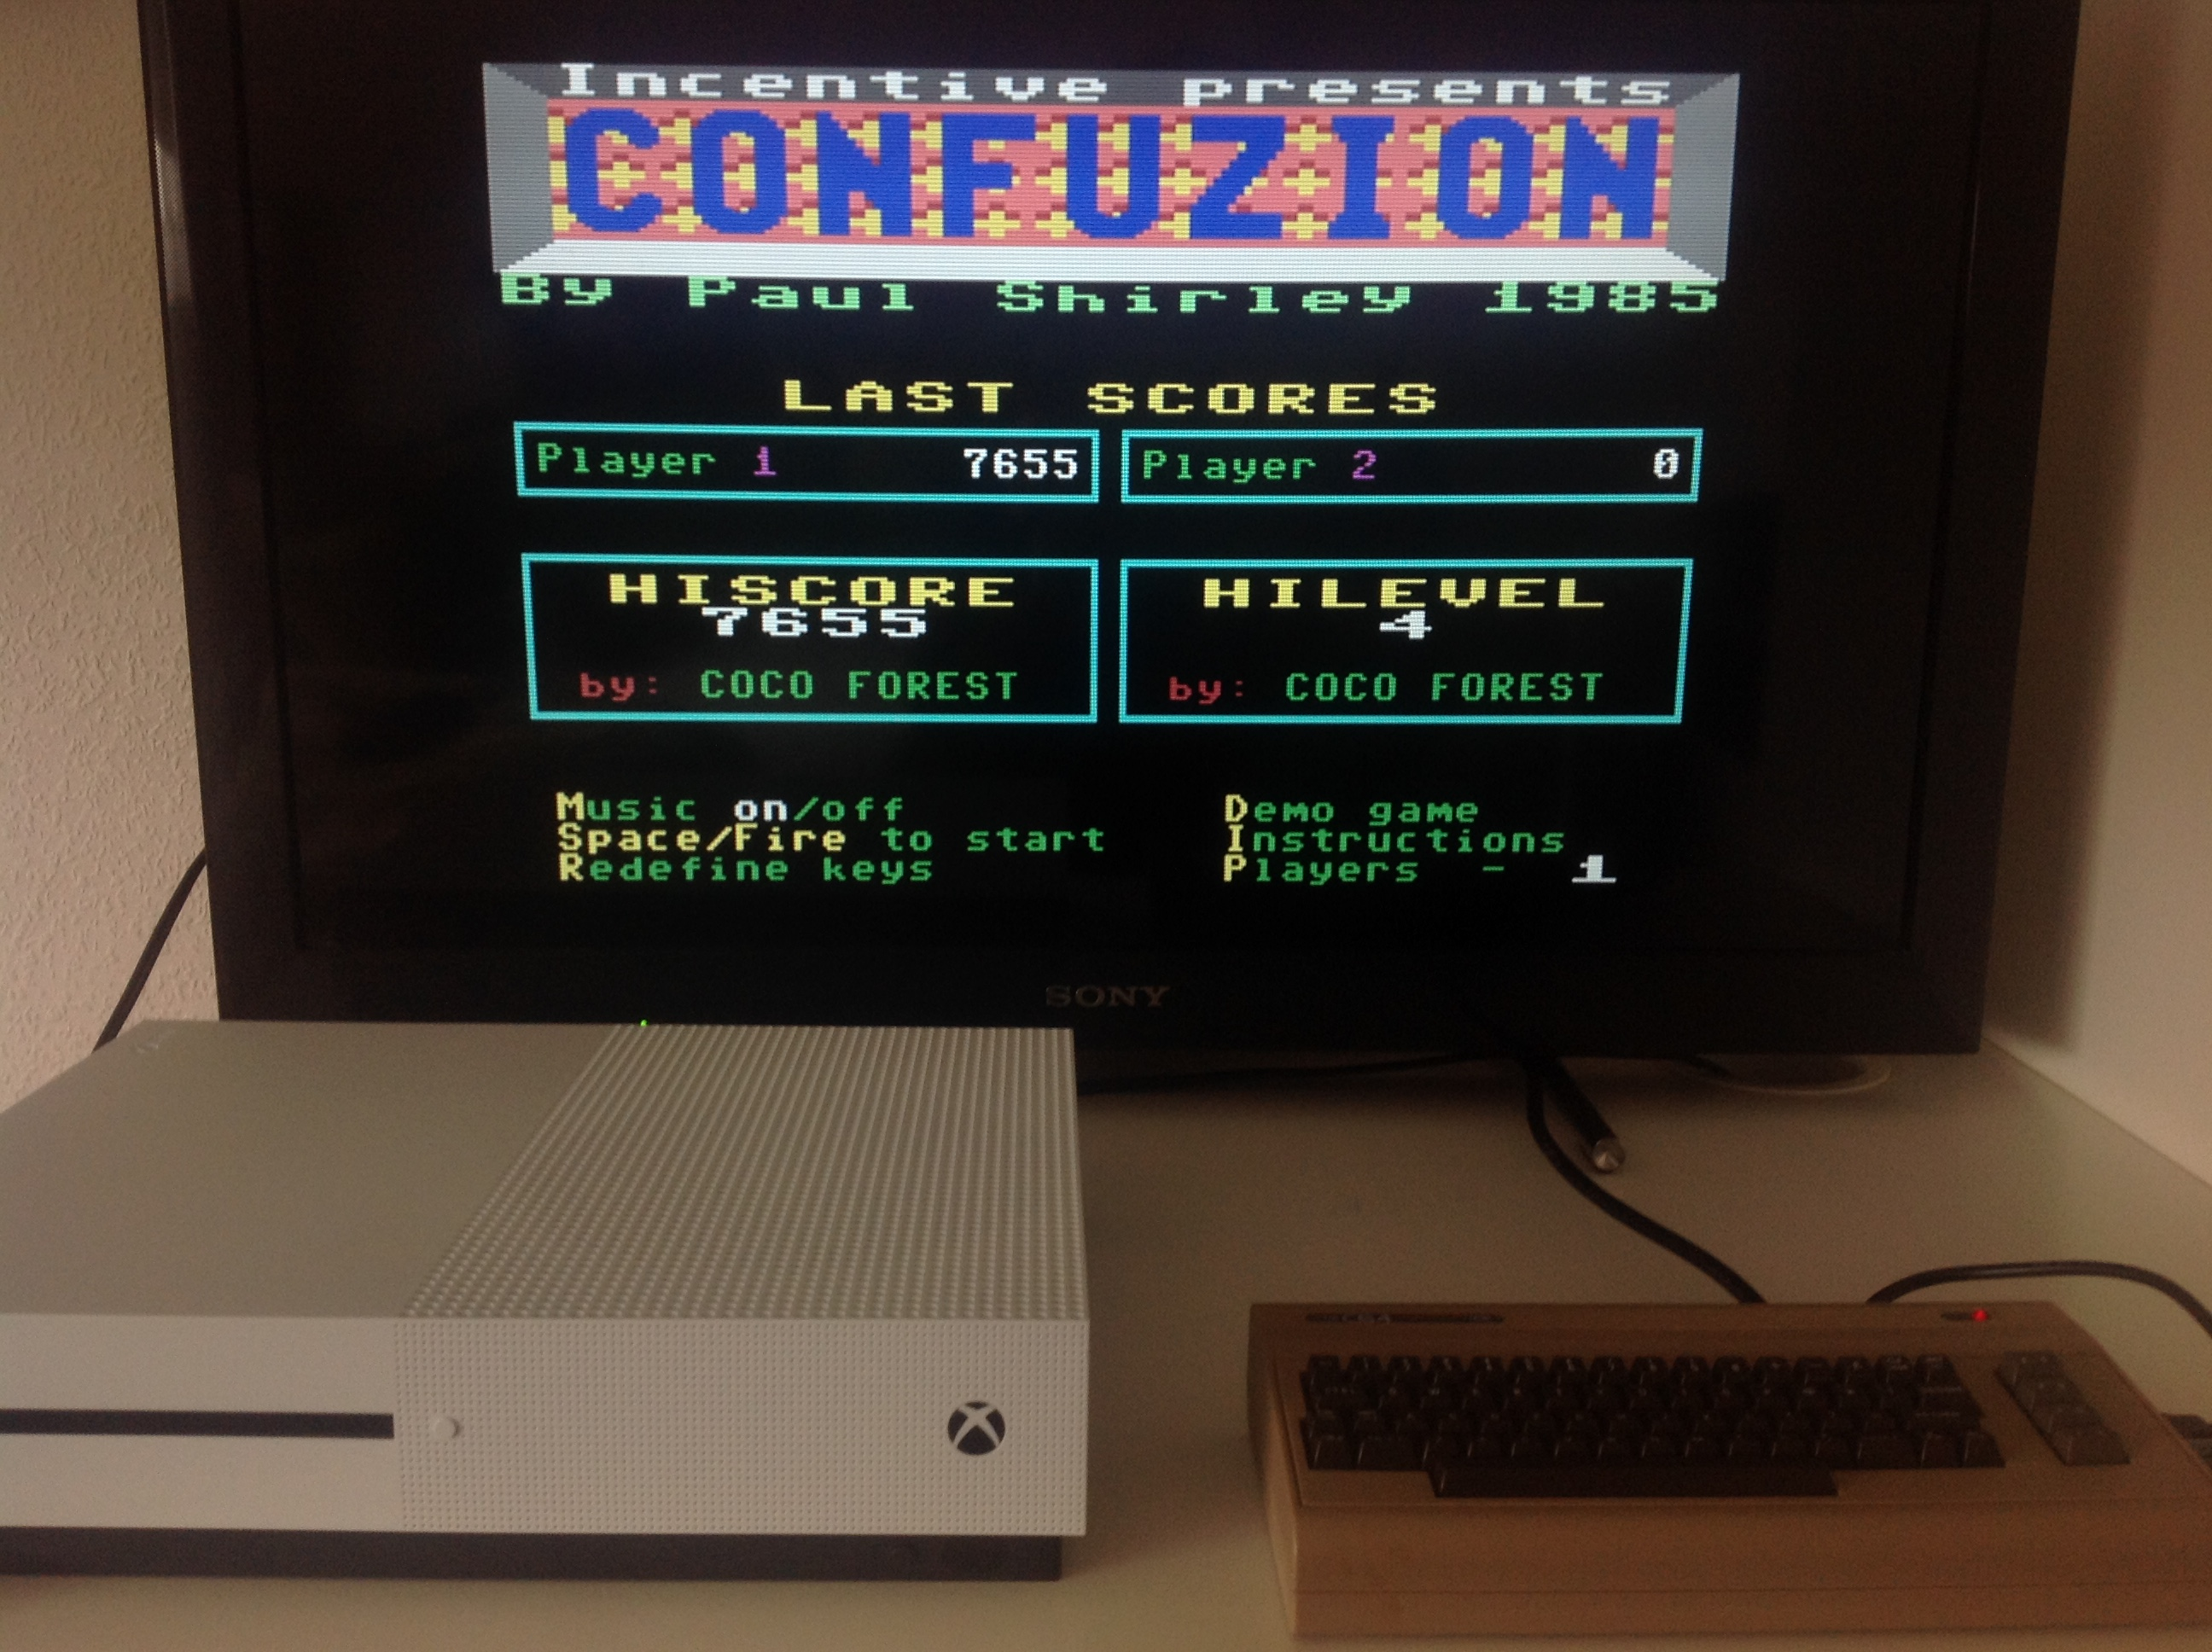 CoCoForest: Confuzion (Commodore 64 Emulated) 7,655 points on 2018-04-06 08:19:25